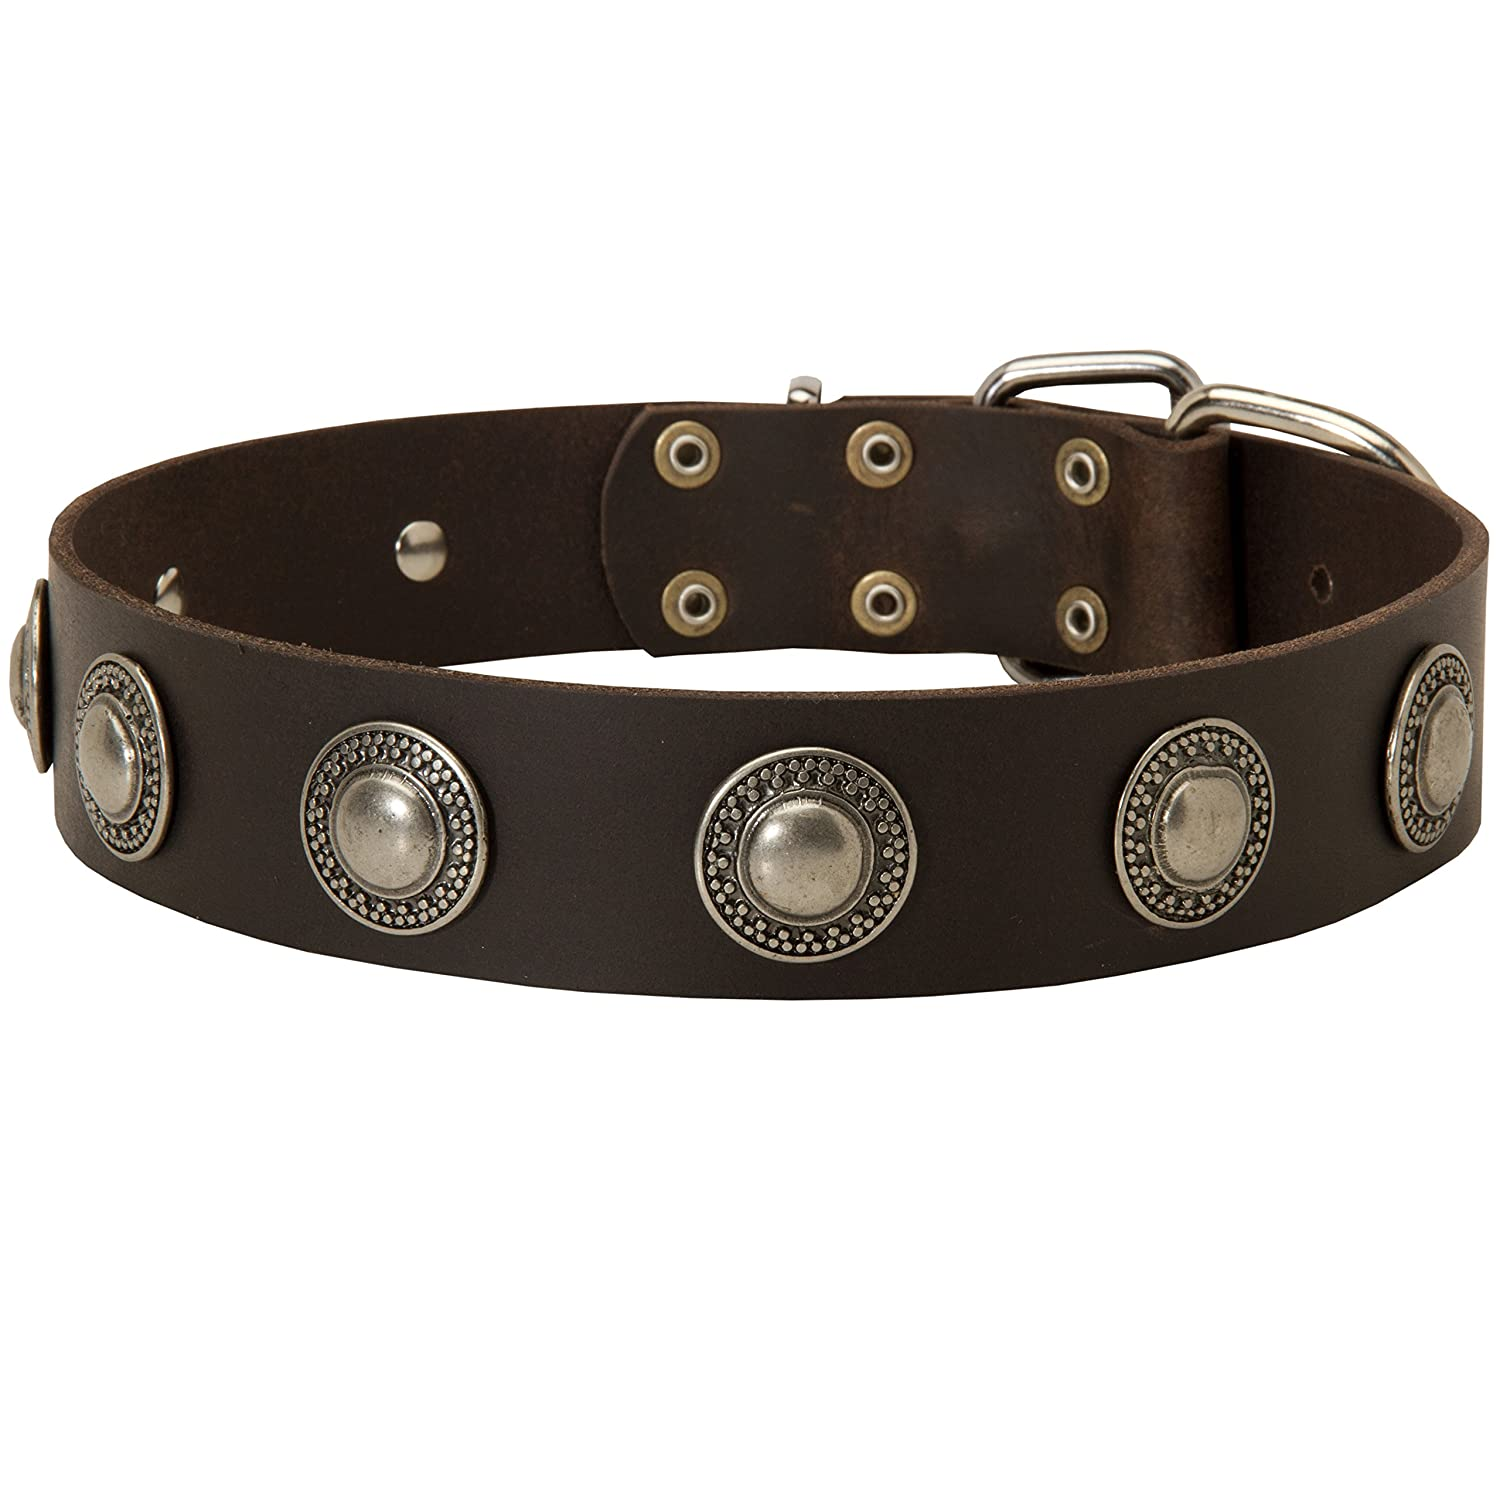 Black fits for 33 inch dog's neck size Black fits for 33 inch dog's neck size 33 inch Handcrafted Black Leather Dog Collar with Nickel Plated Brooches  True Jewel  1 1 2 inch (40 mm) wide